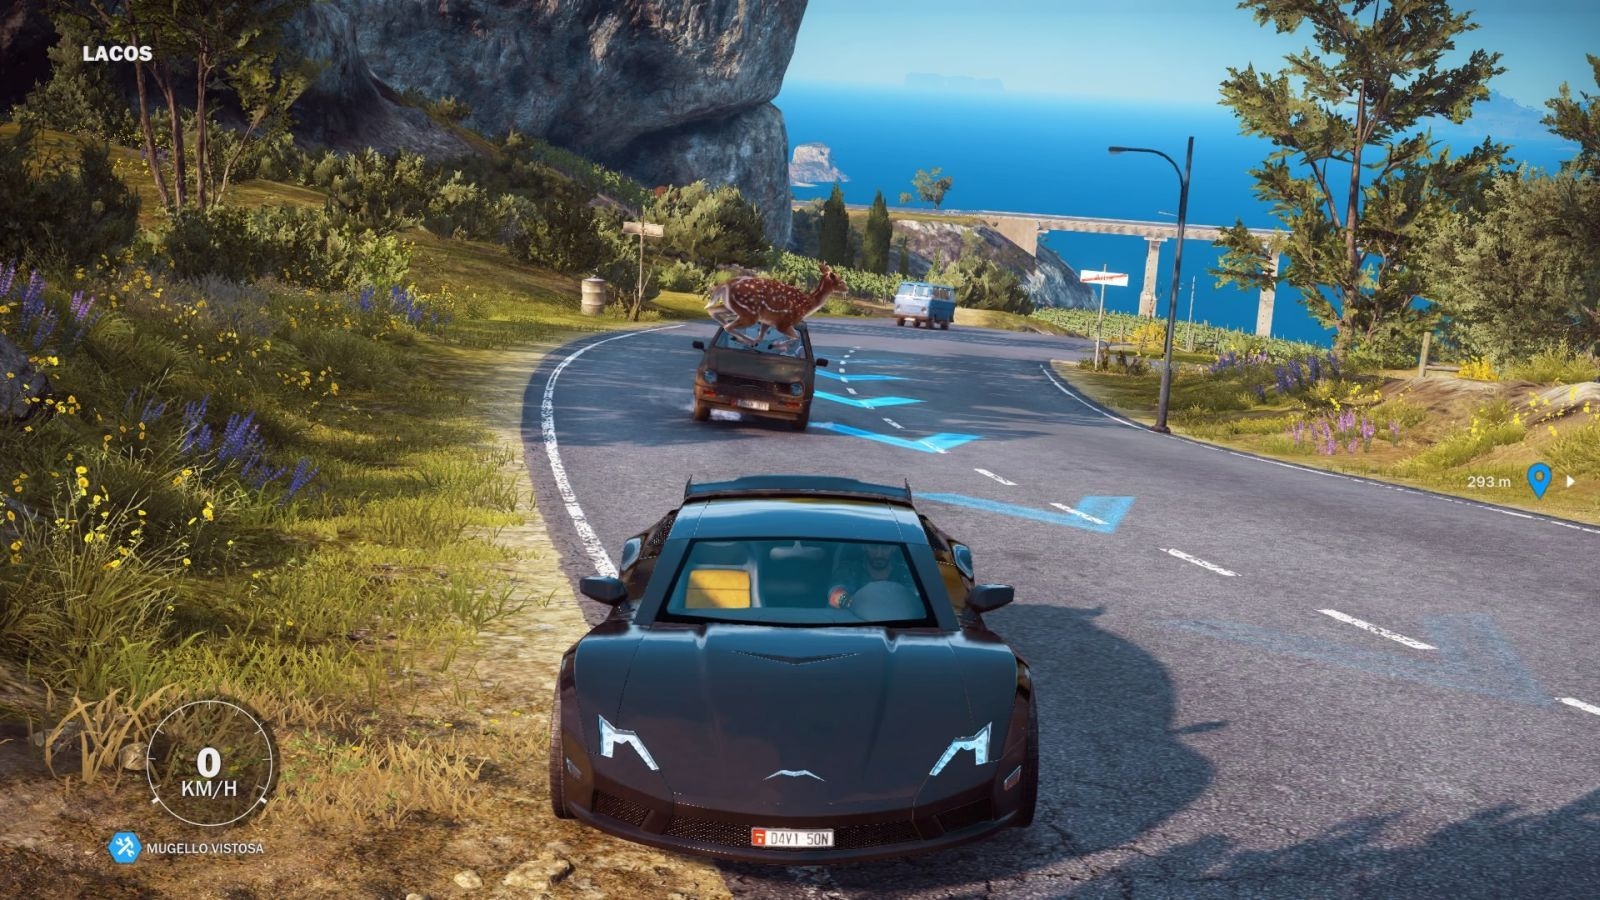 Name This Car Guys Just Cause 3 Vehicles Just Cause